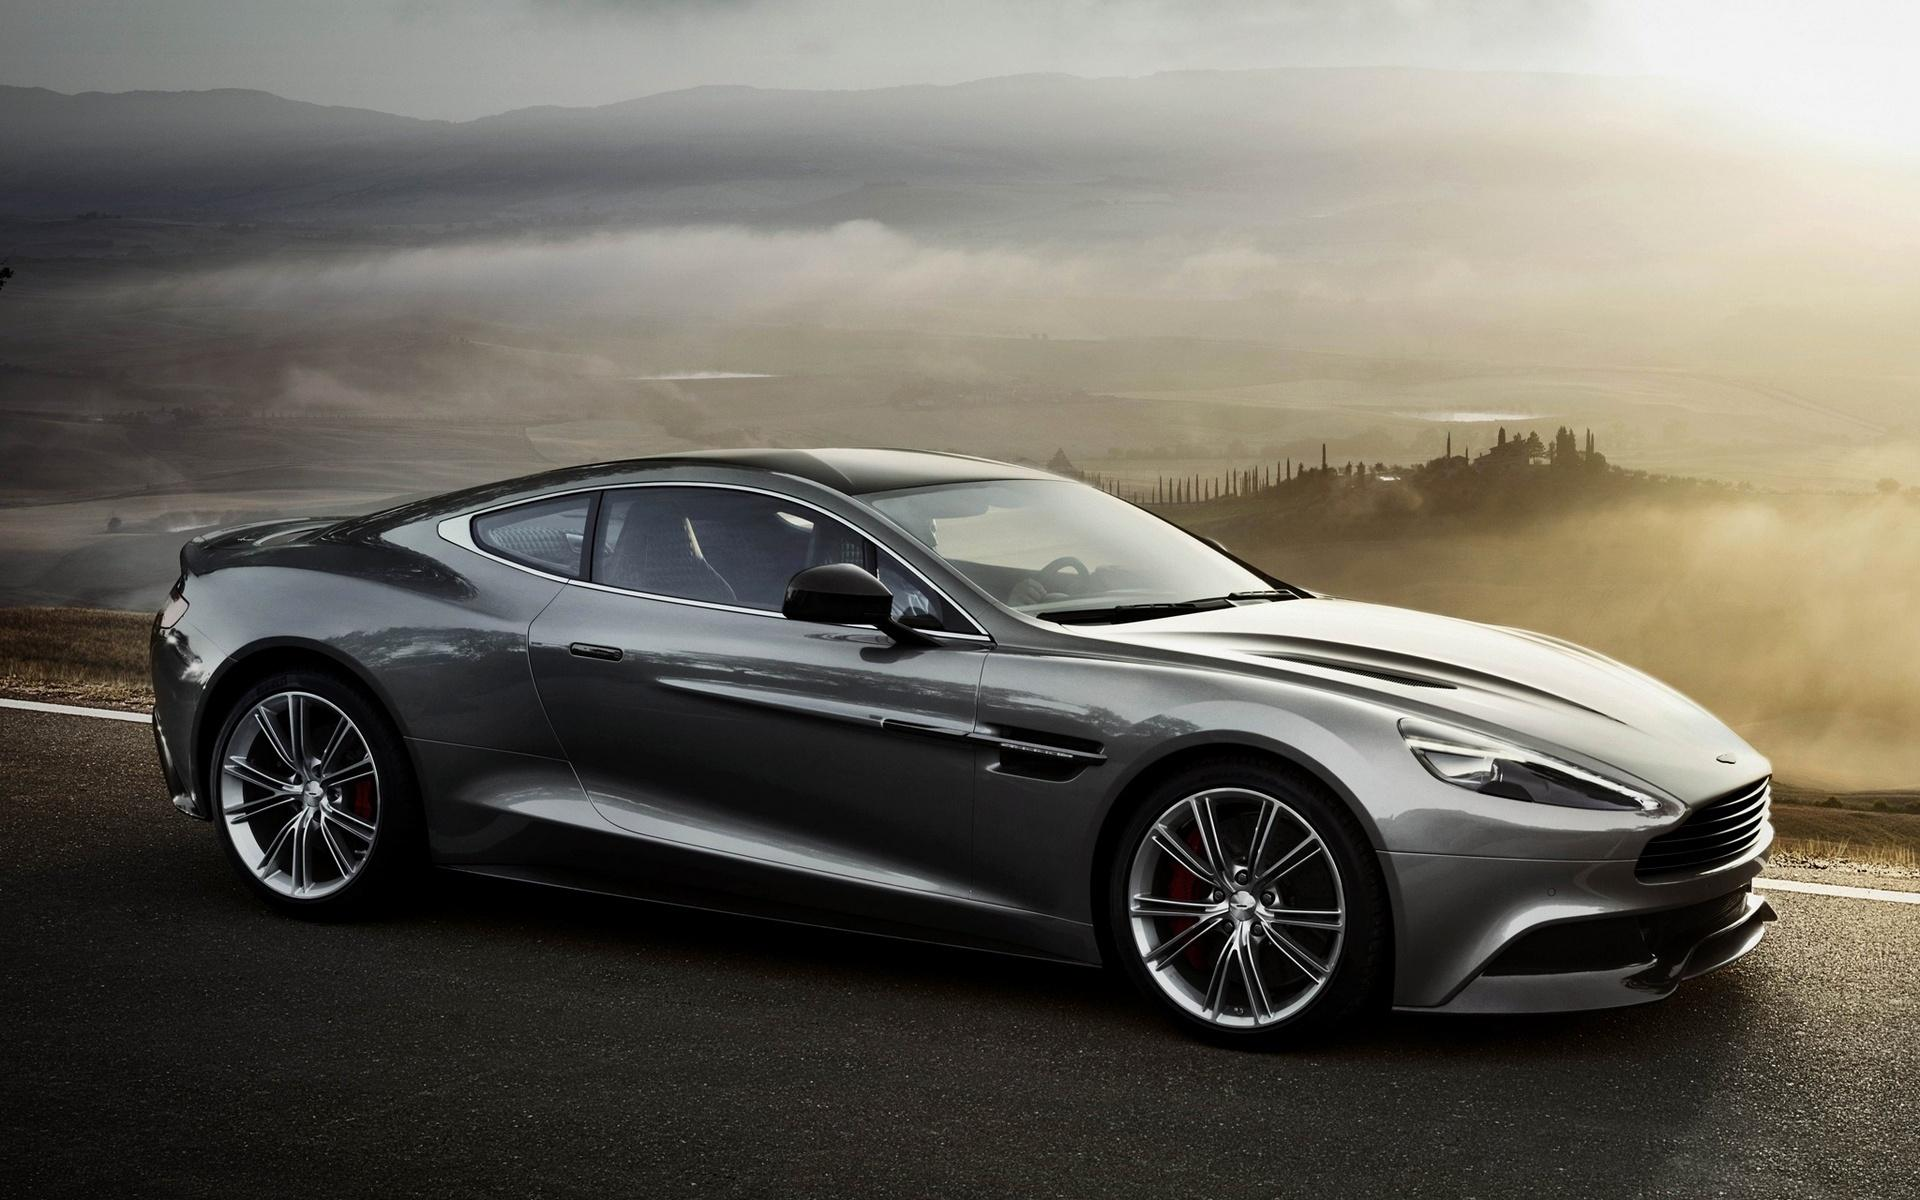 aston martin cars price list -india 2015 | surfolks